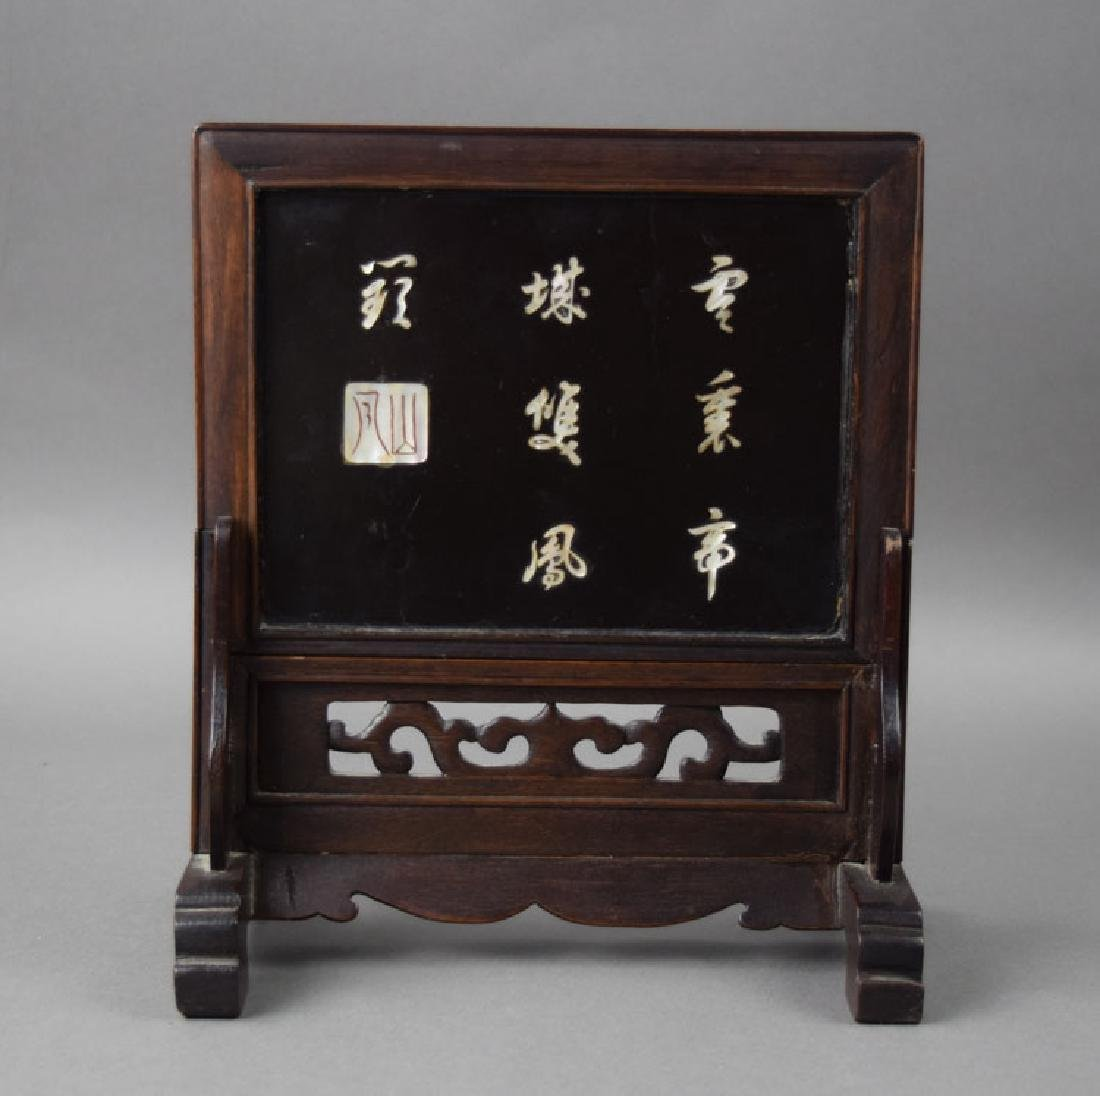 Chinese mother of pearl inlaid hardwood table screen - 3